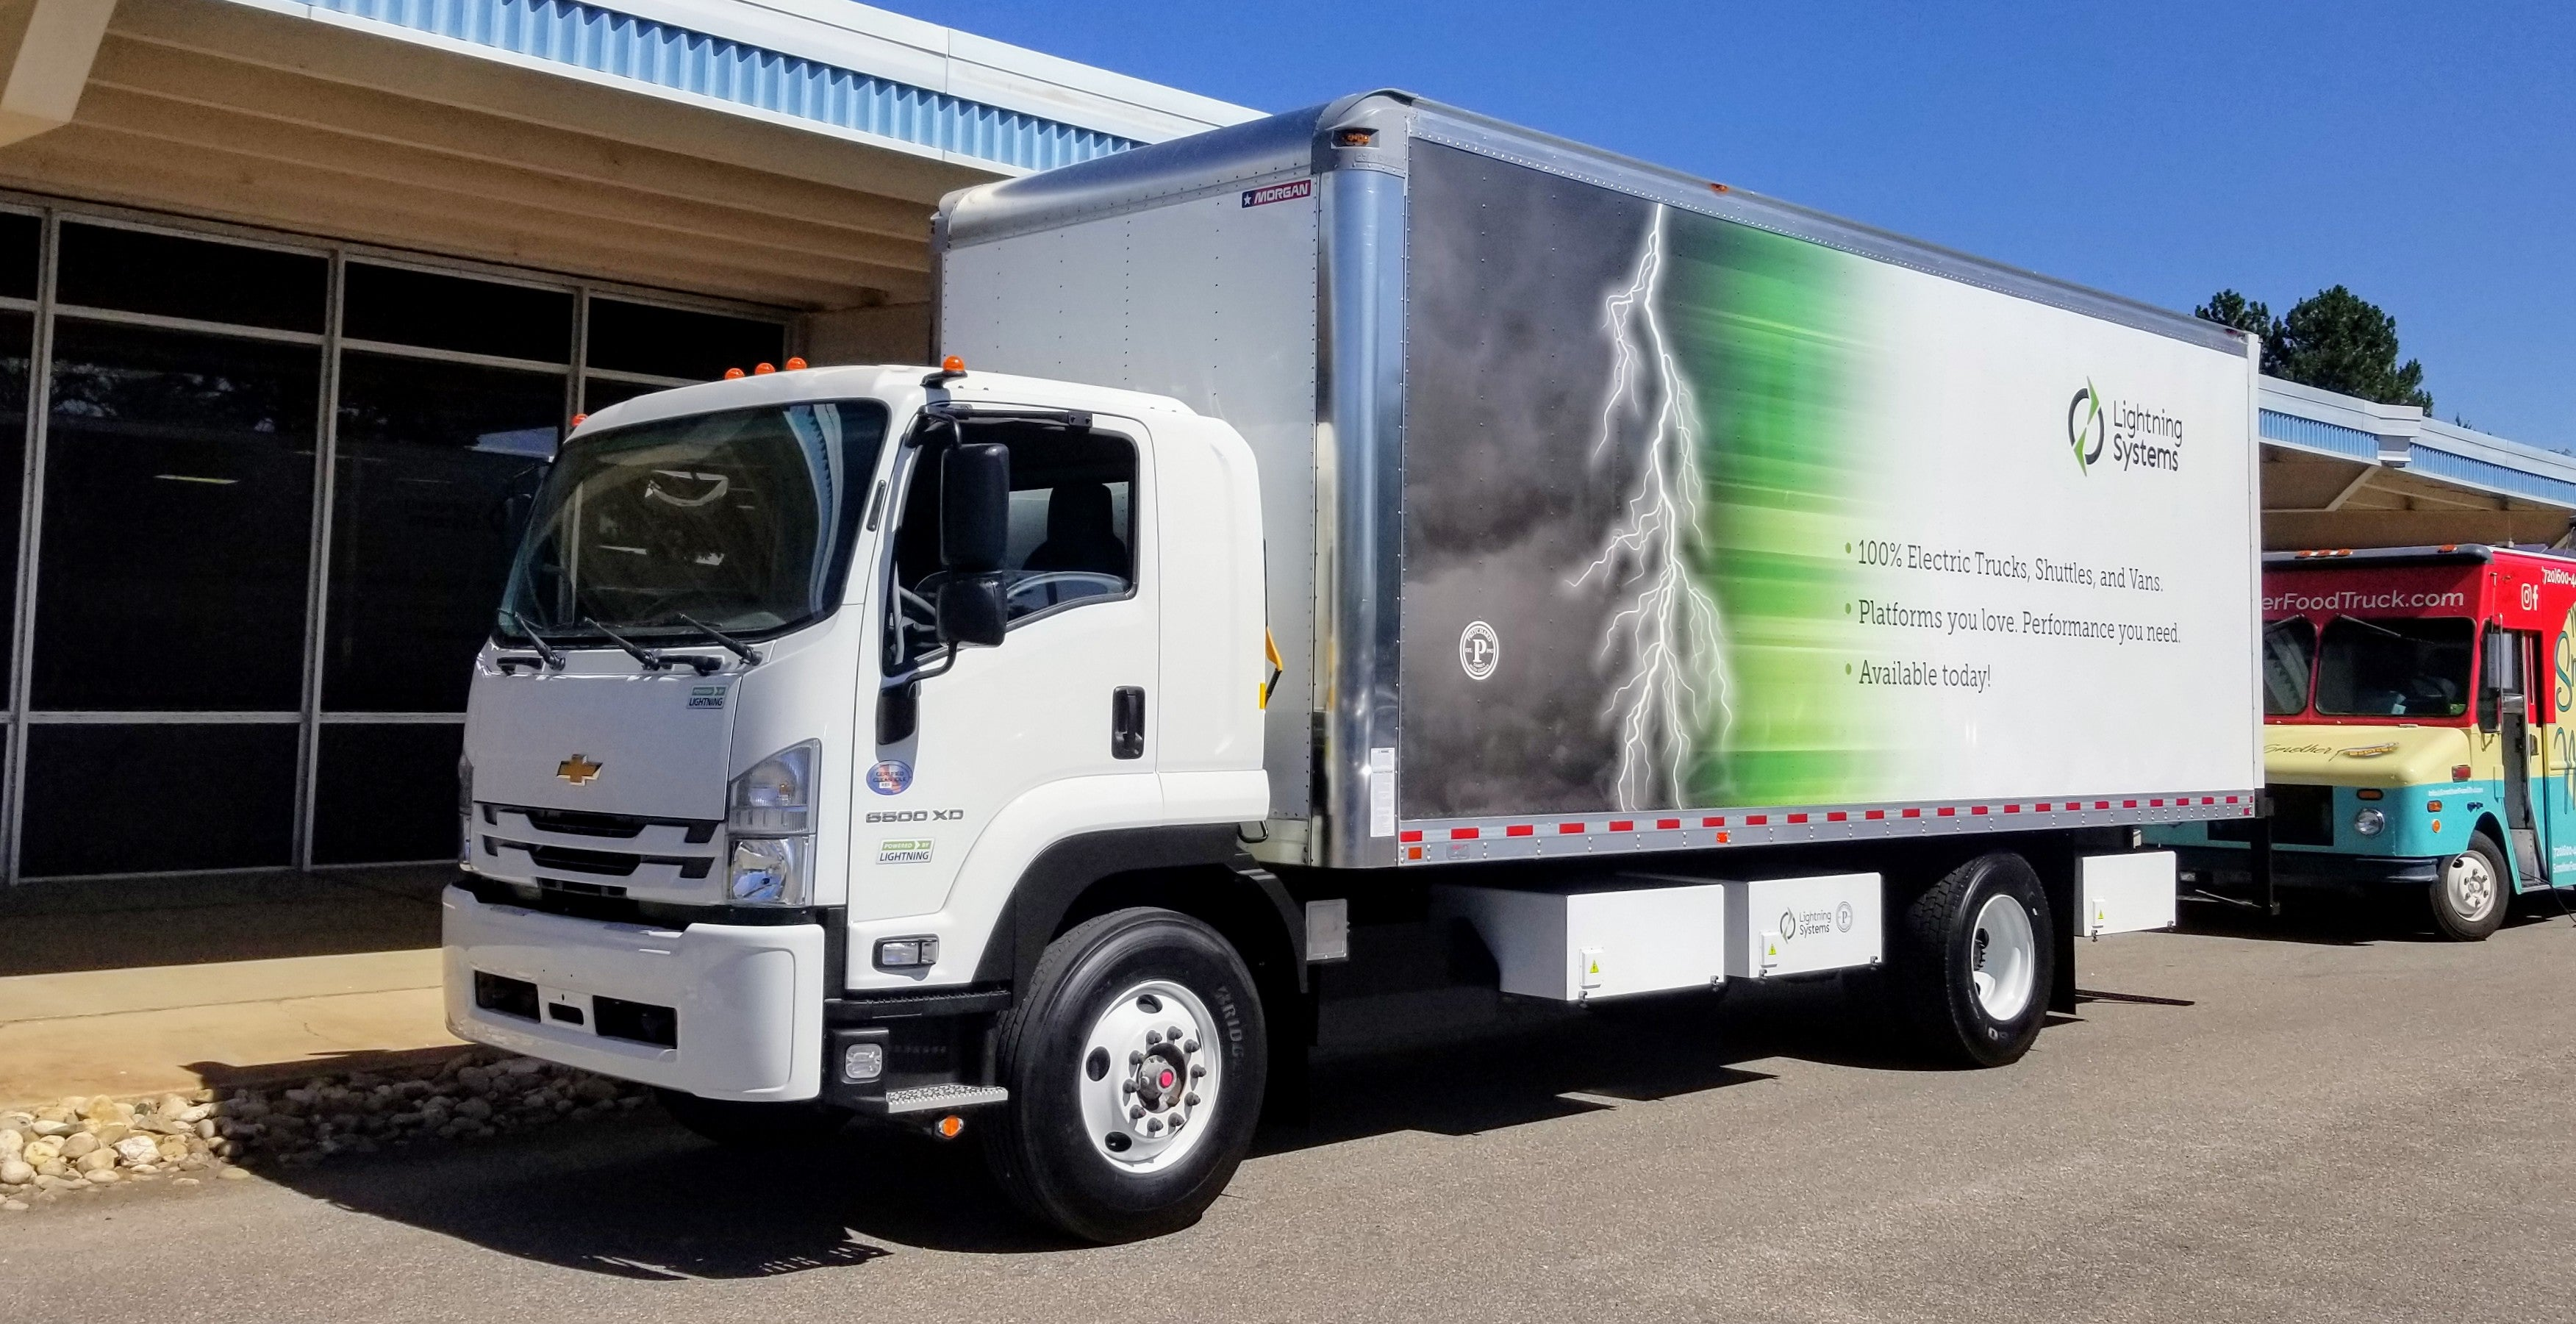 Lightning Systems-powered Chevy 6500 HD